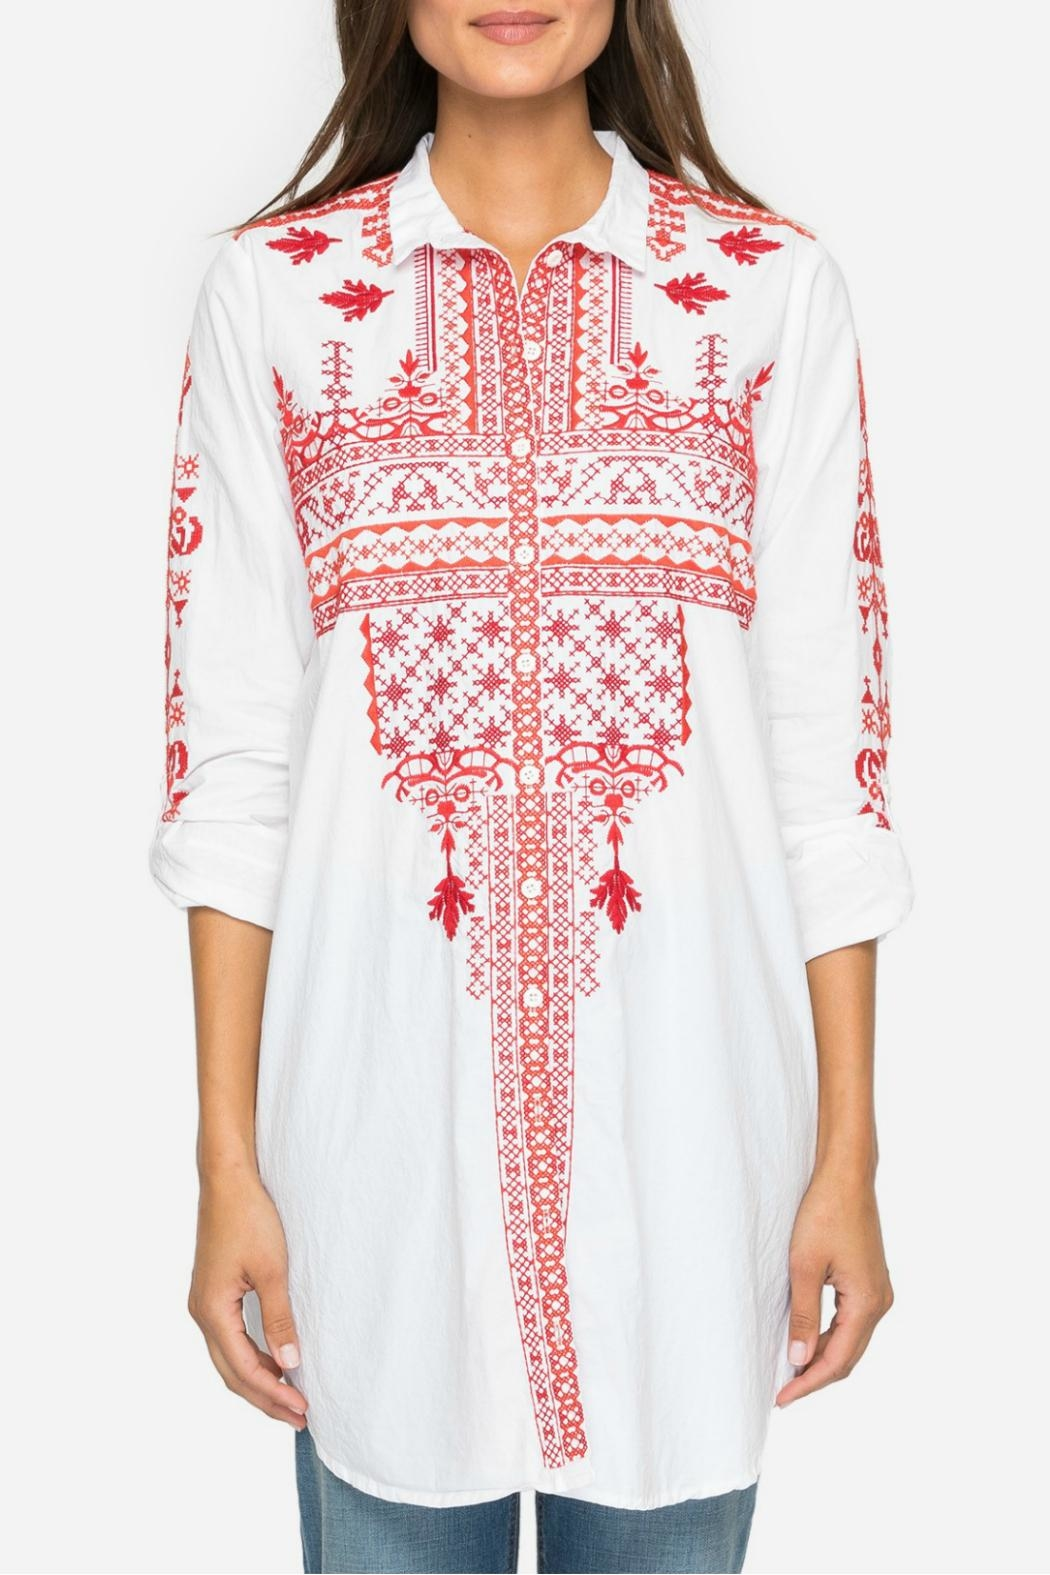 Johnny Was Embroidered Tunic Shirt - Front Cropped Image